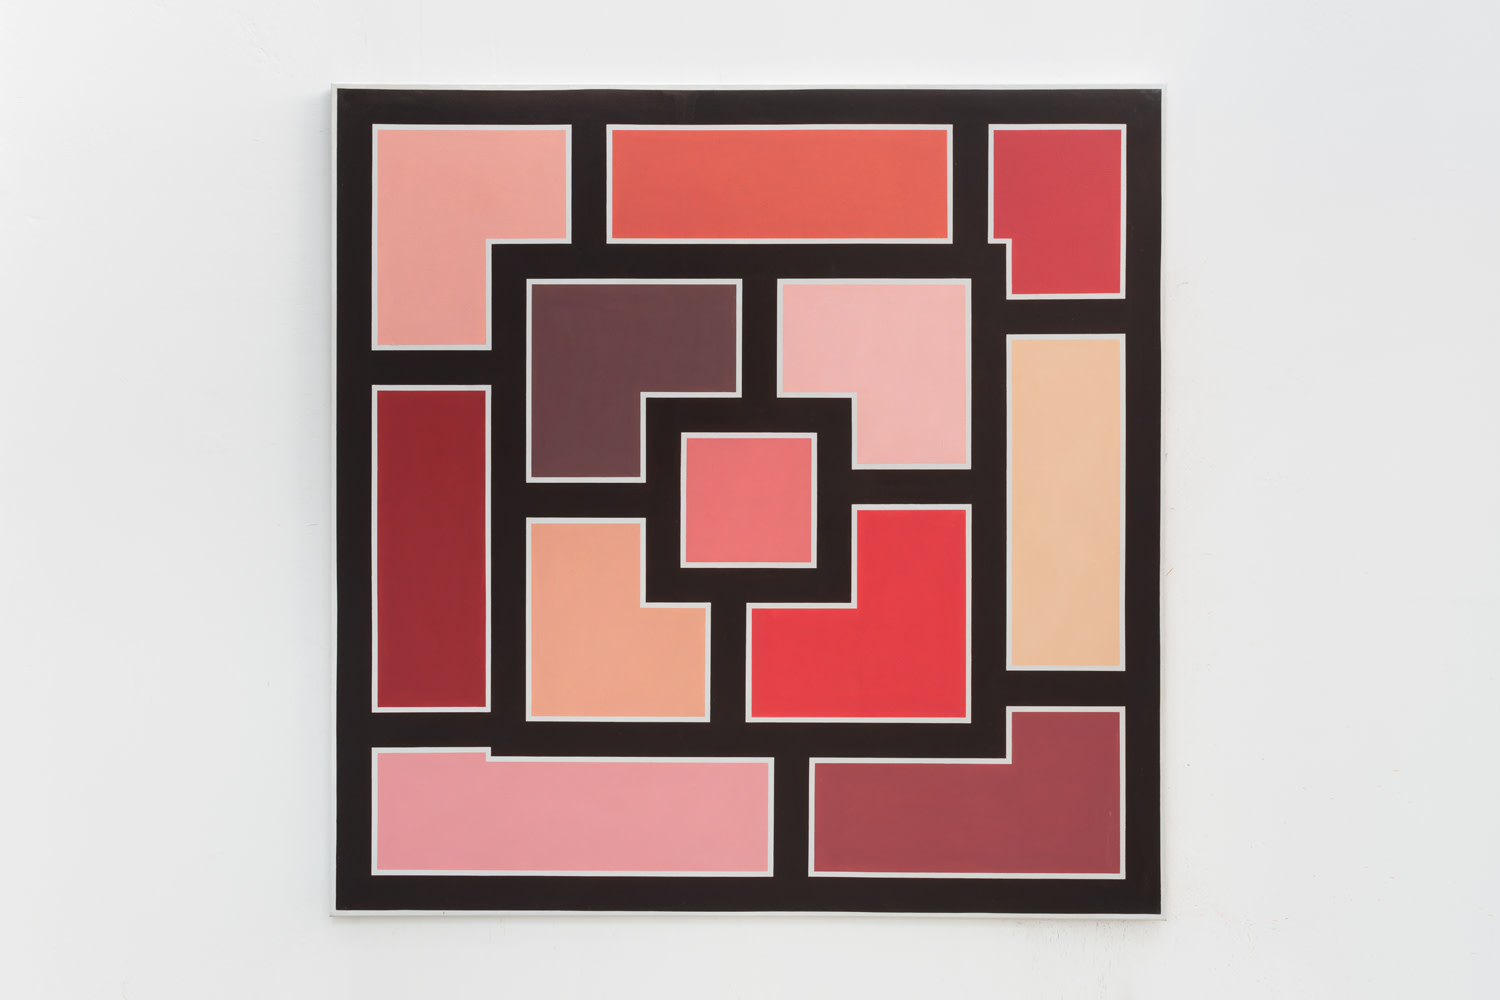 Brown, pinks, and grey, 1974